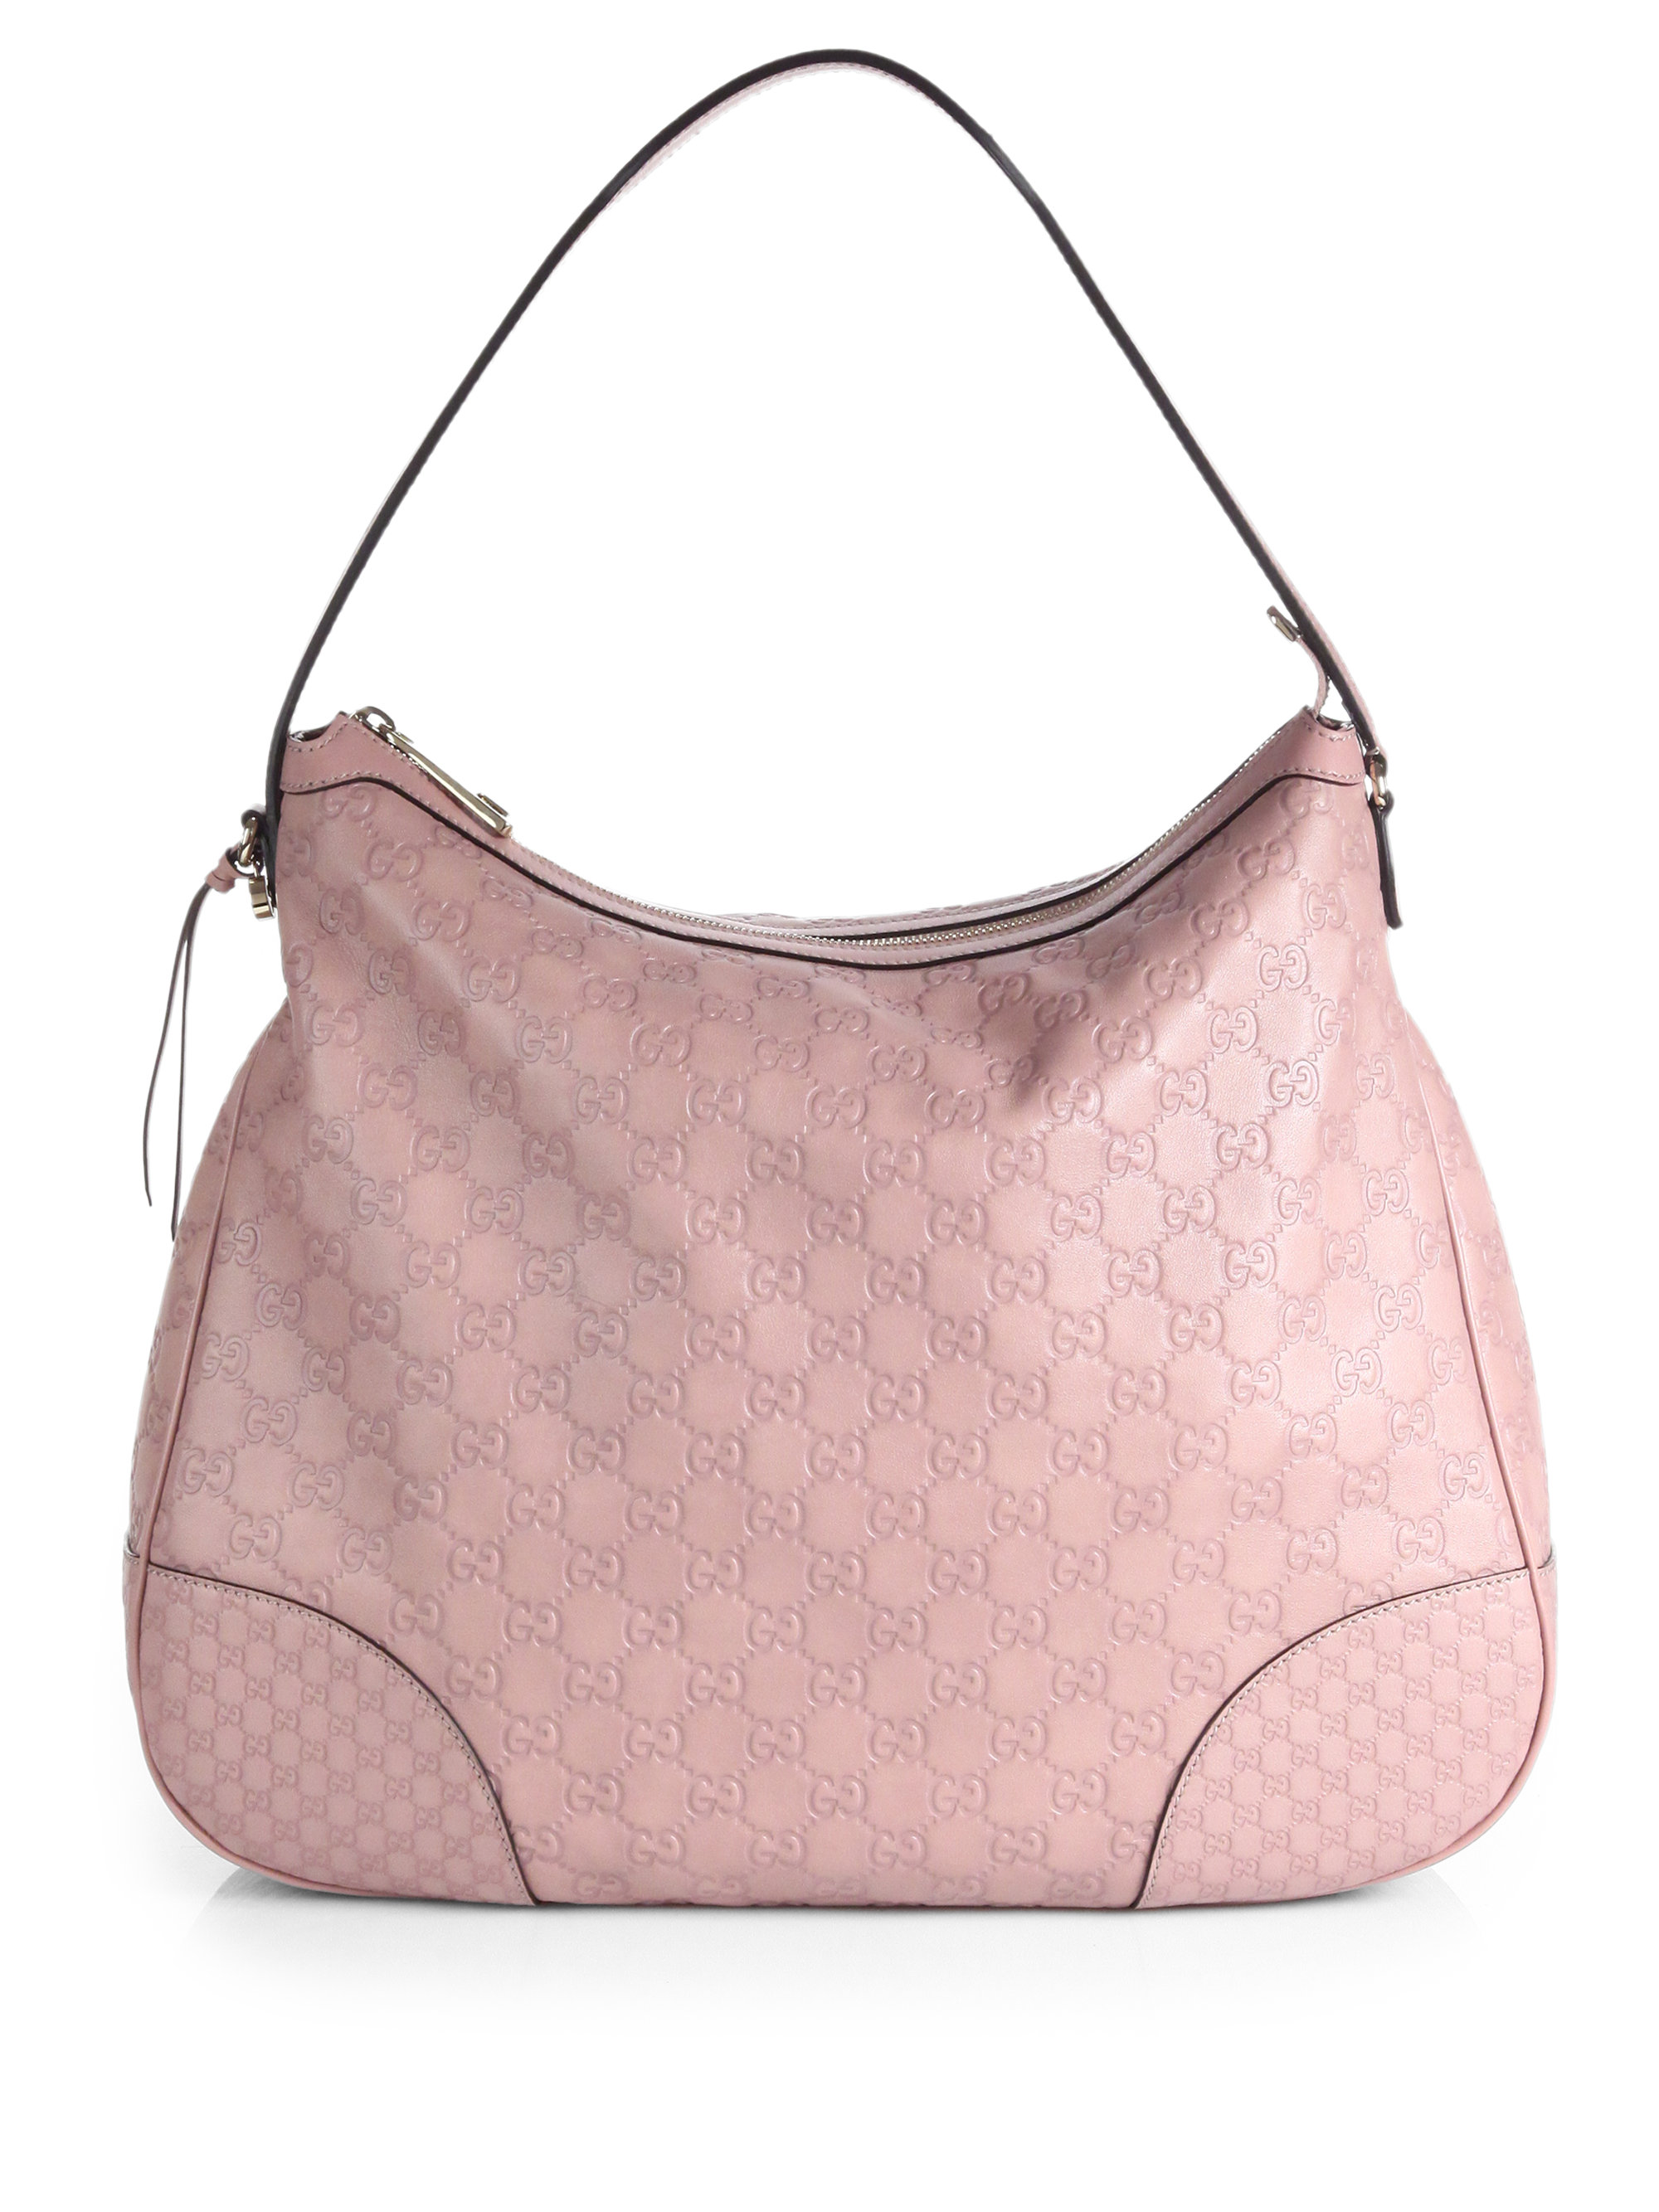 f6169a6161a8 Gucci Bree Ssima Leather Hobo Bag in Pink - Lyst